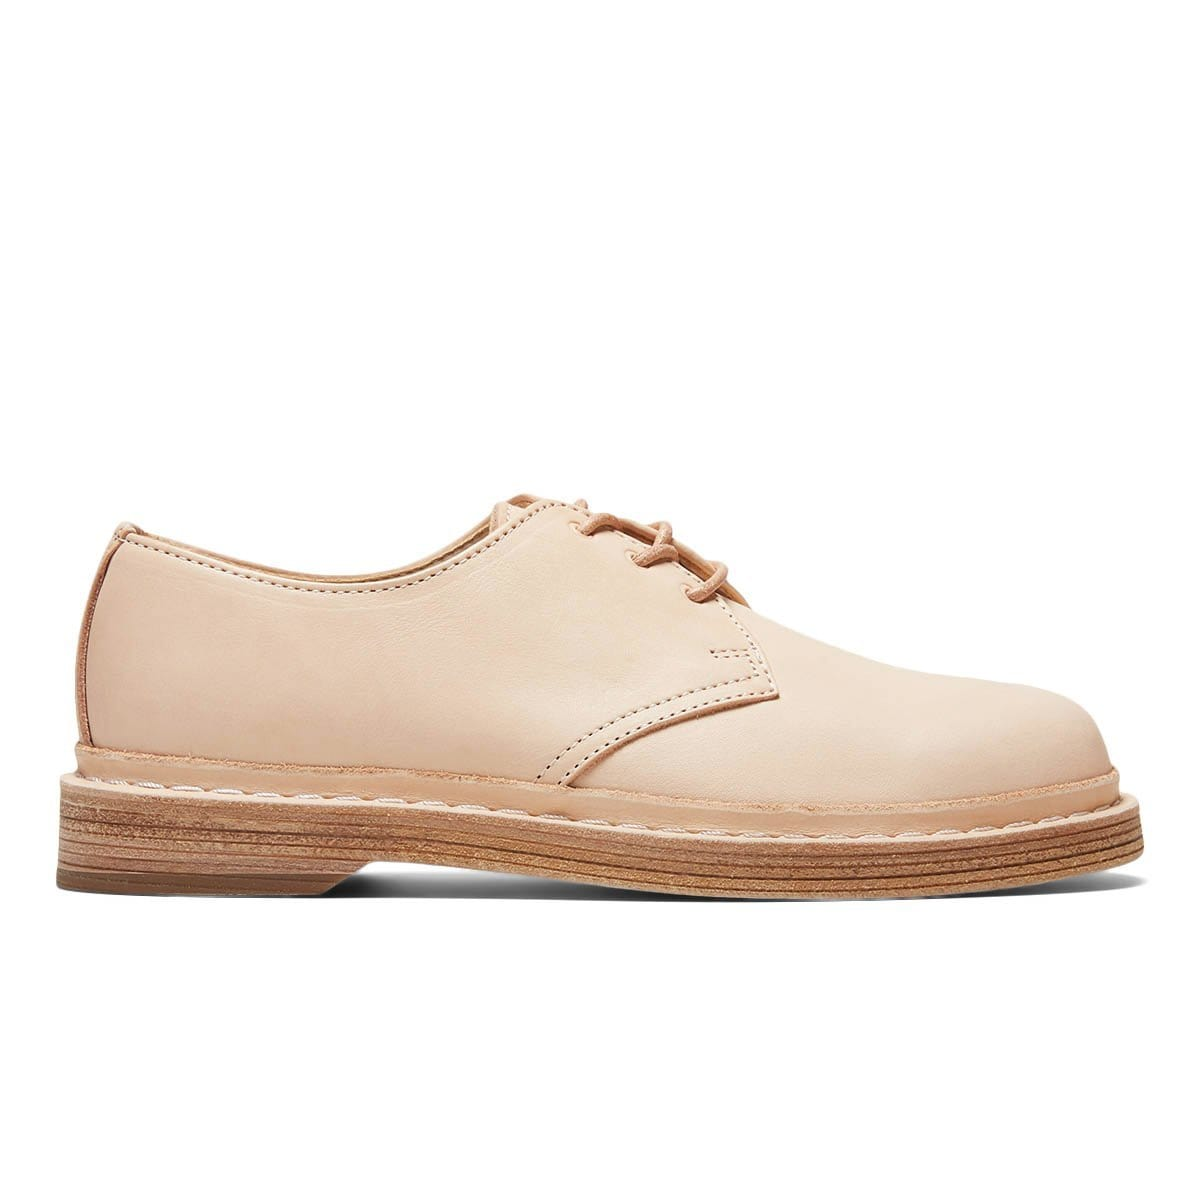 Hender Scheme Shoes MANUAL INDUSTRIAL PRODUCTS 21